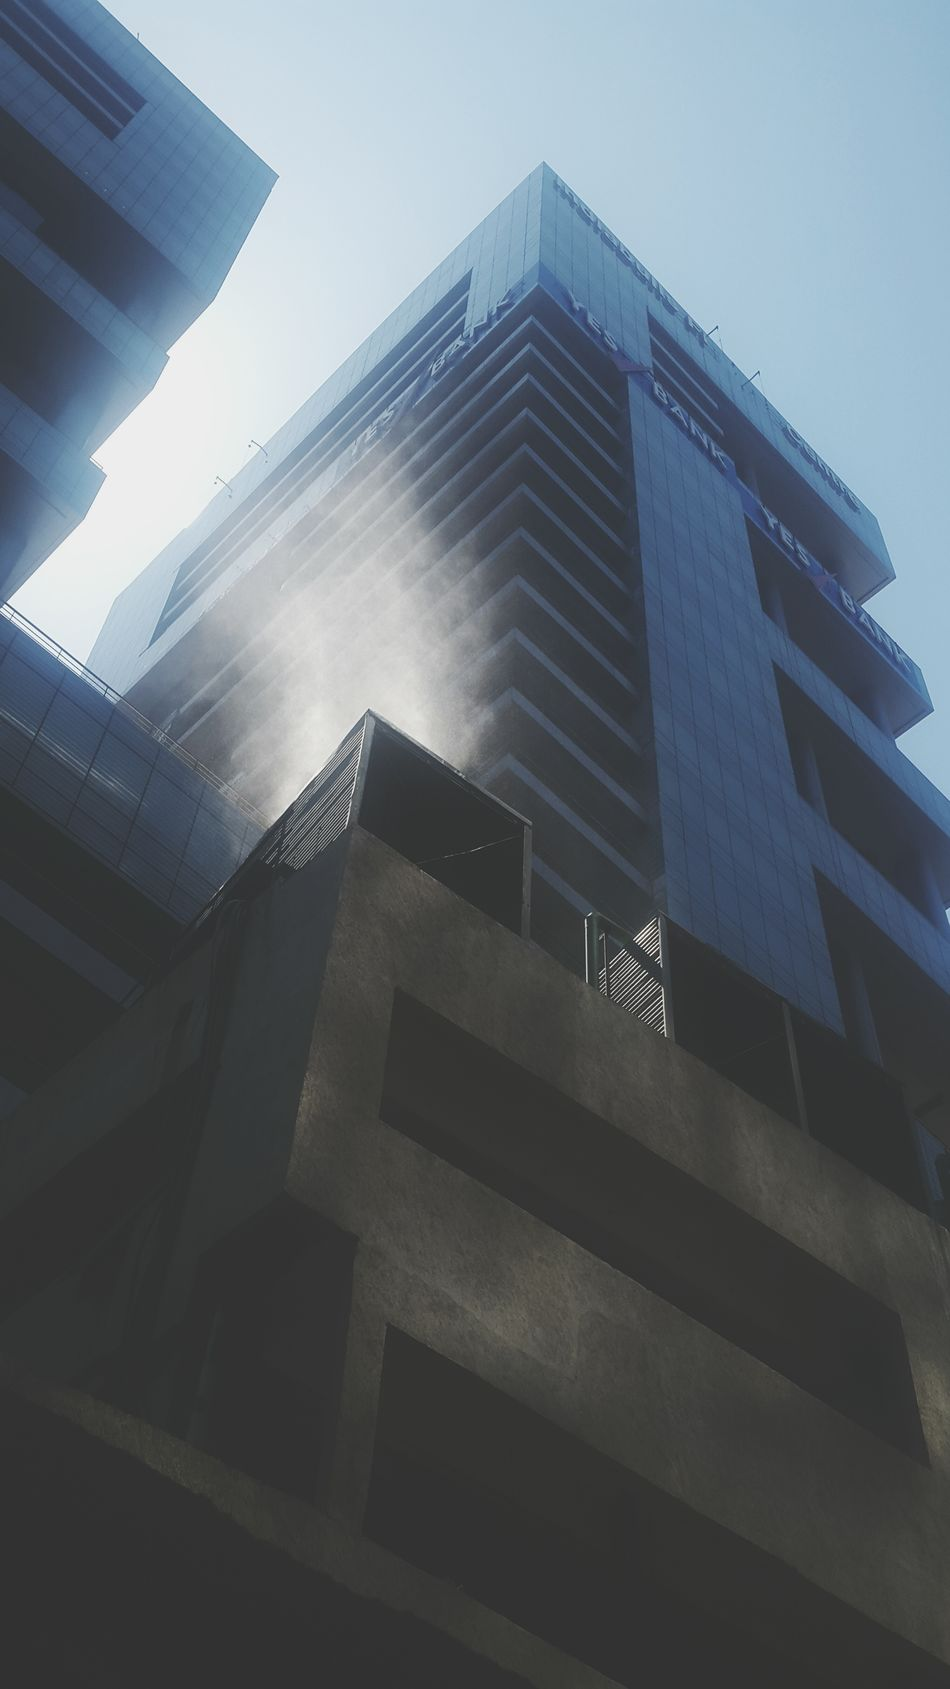 Building Airconditioner Compressor Water ComingOut Lowerparel Mumbai Samsung Galaxy S5 Photography Beingaman